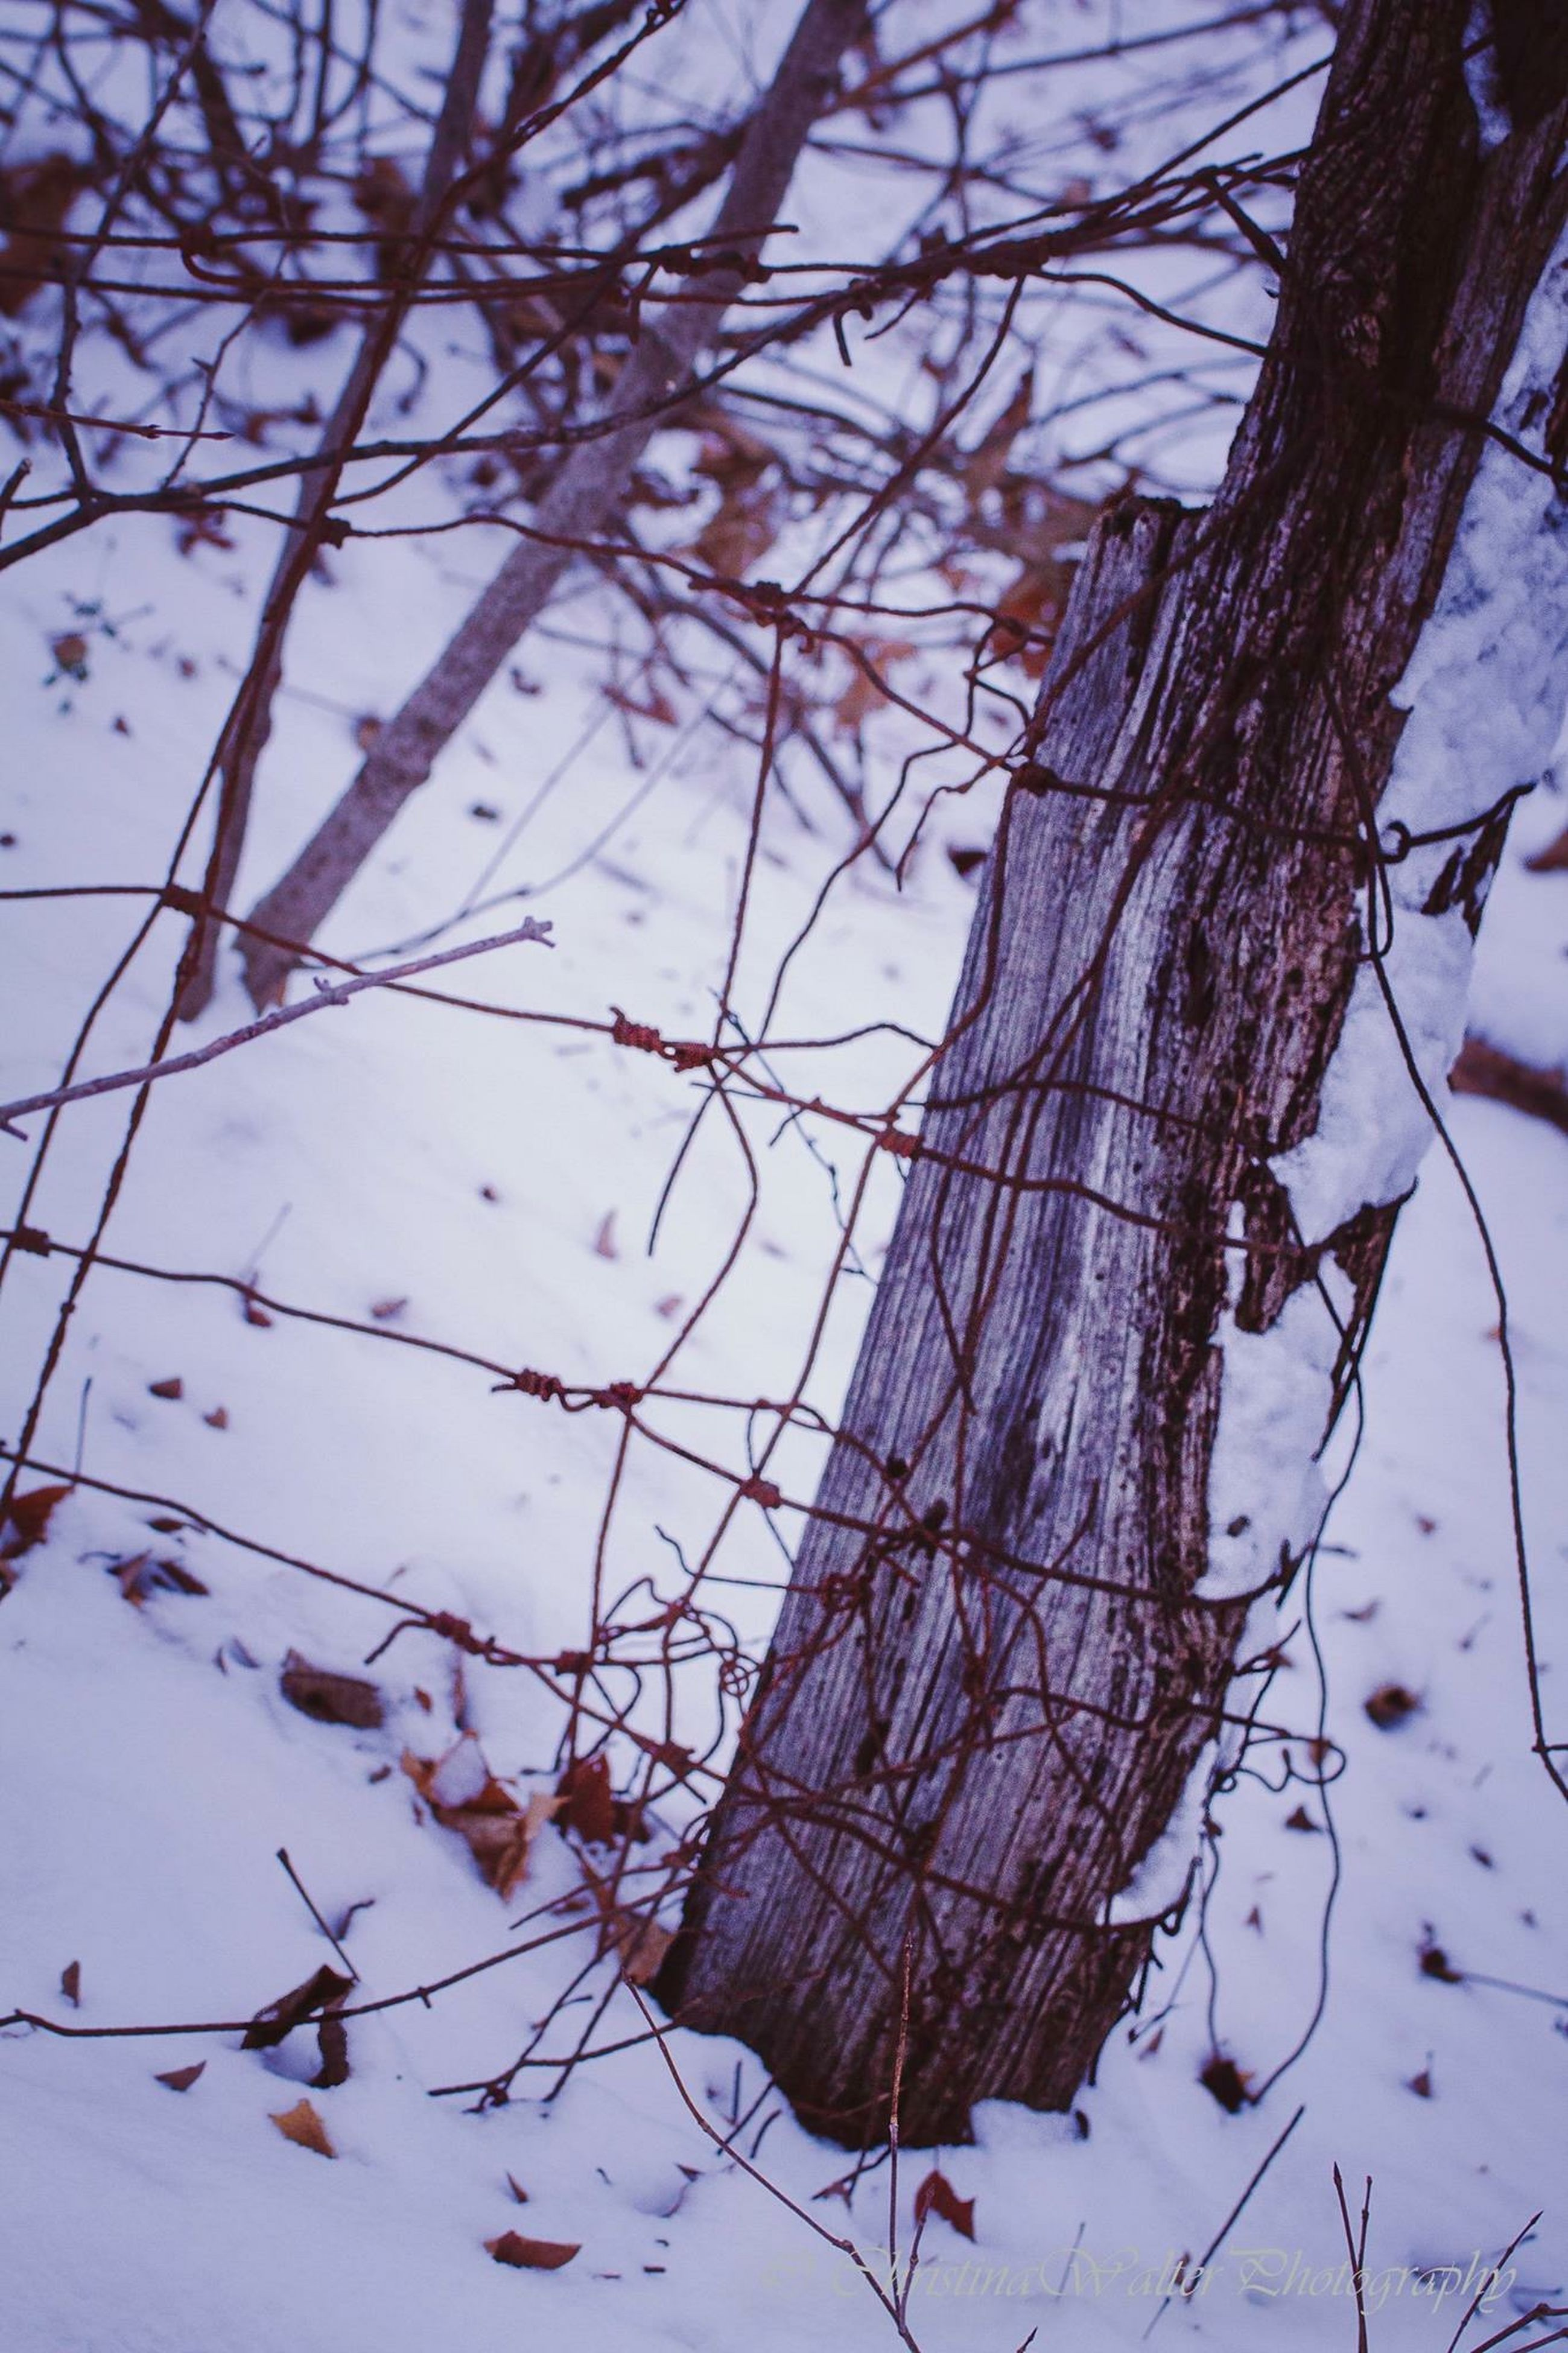 branch, winter, cold temperature, bare tree, season, snow, nature, frozen, sky, close-up, low angle view, weather, tree, focus on foreground, day, dry, twig, outdoors, growth, tranquility